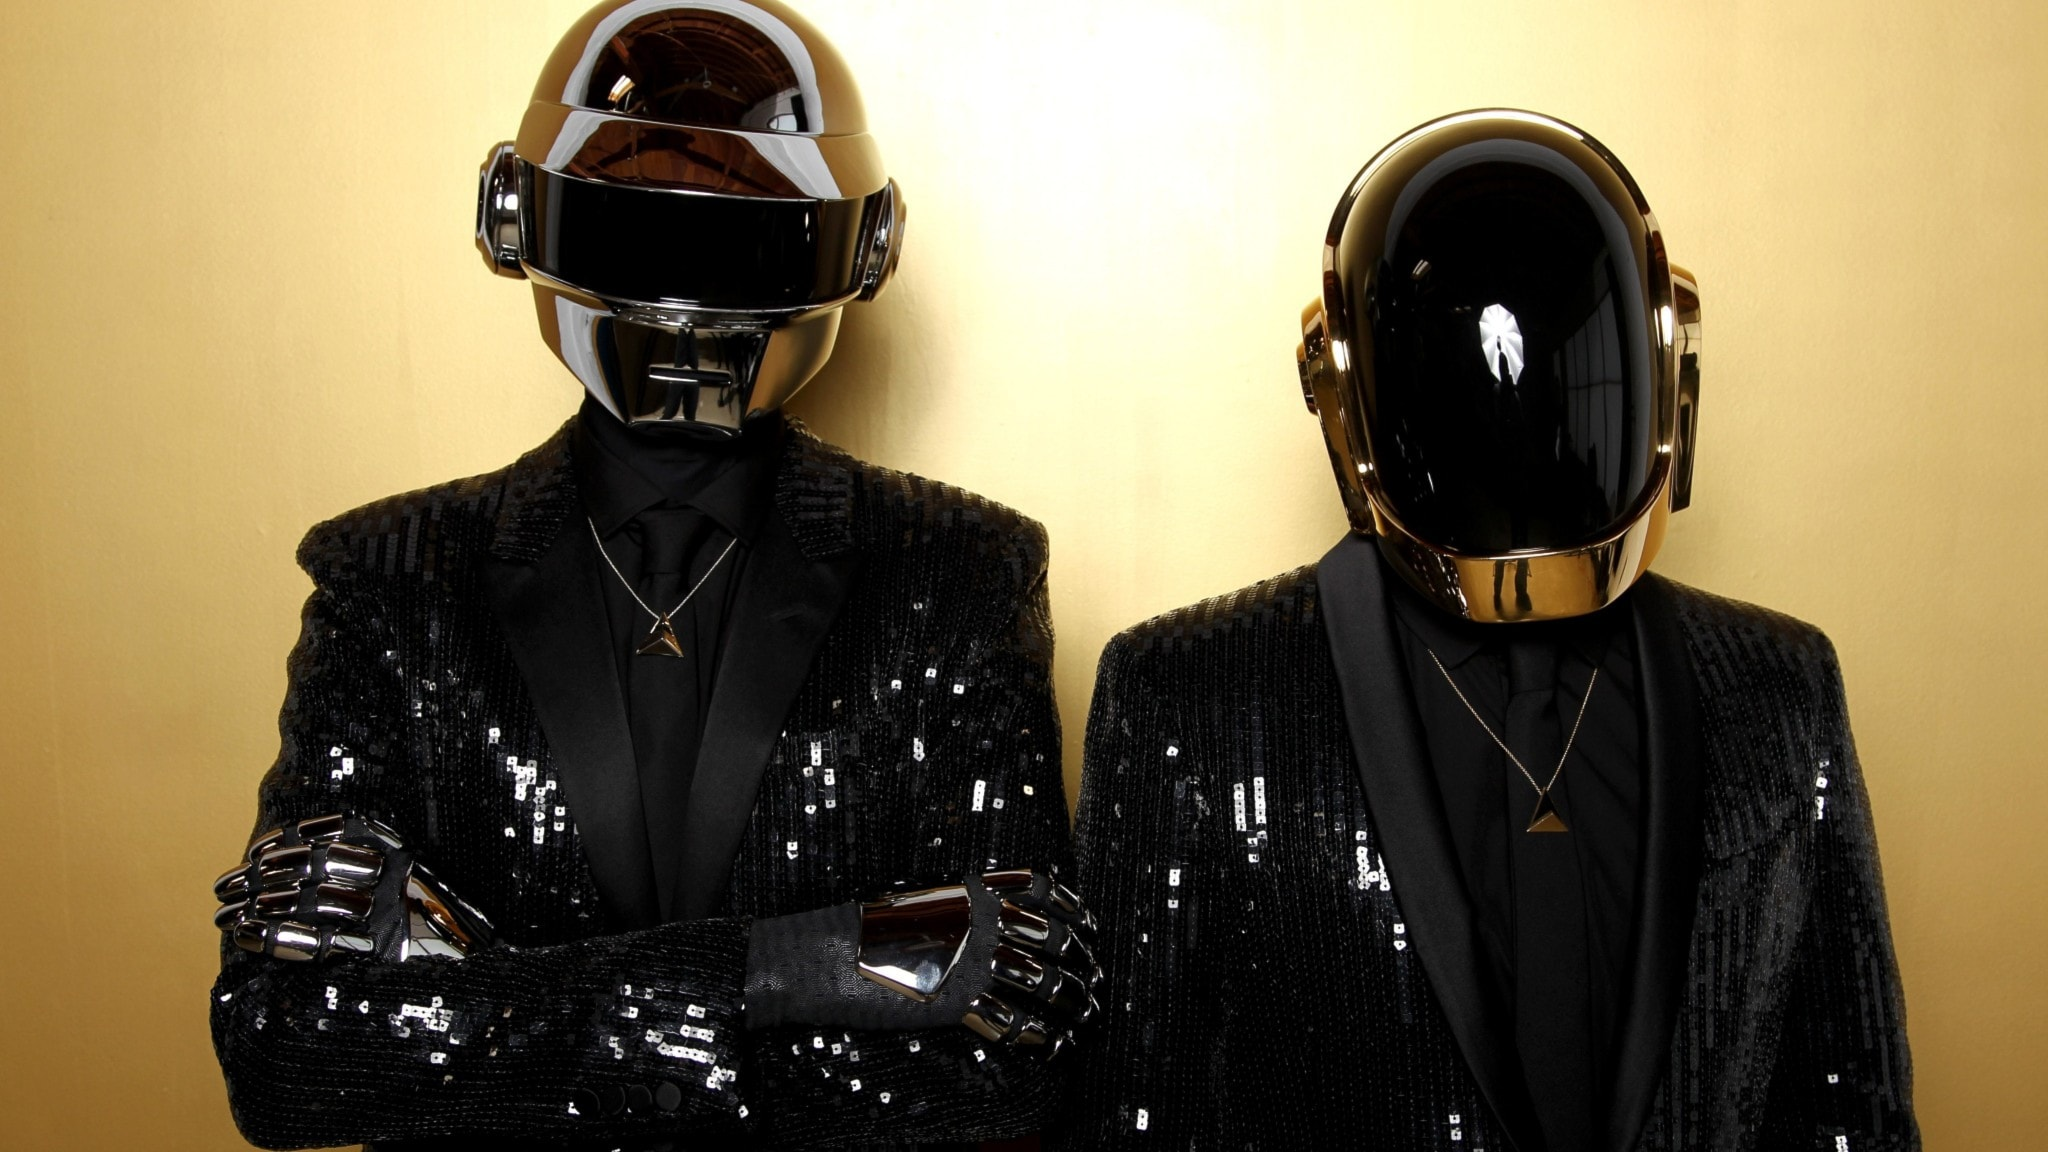 Musikduon Daft Punk